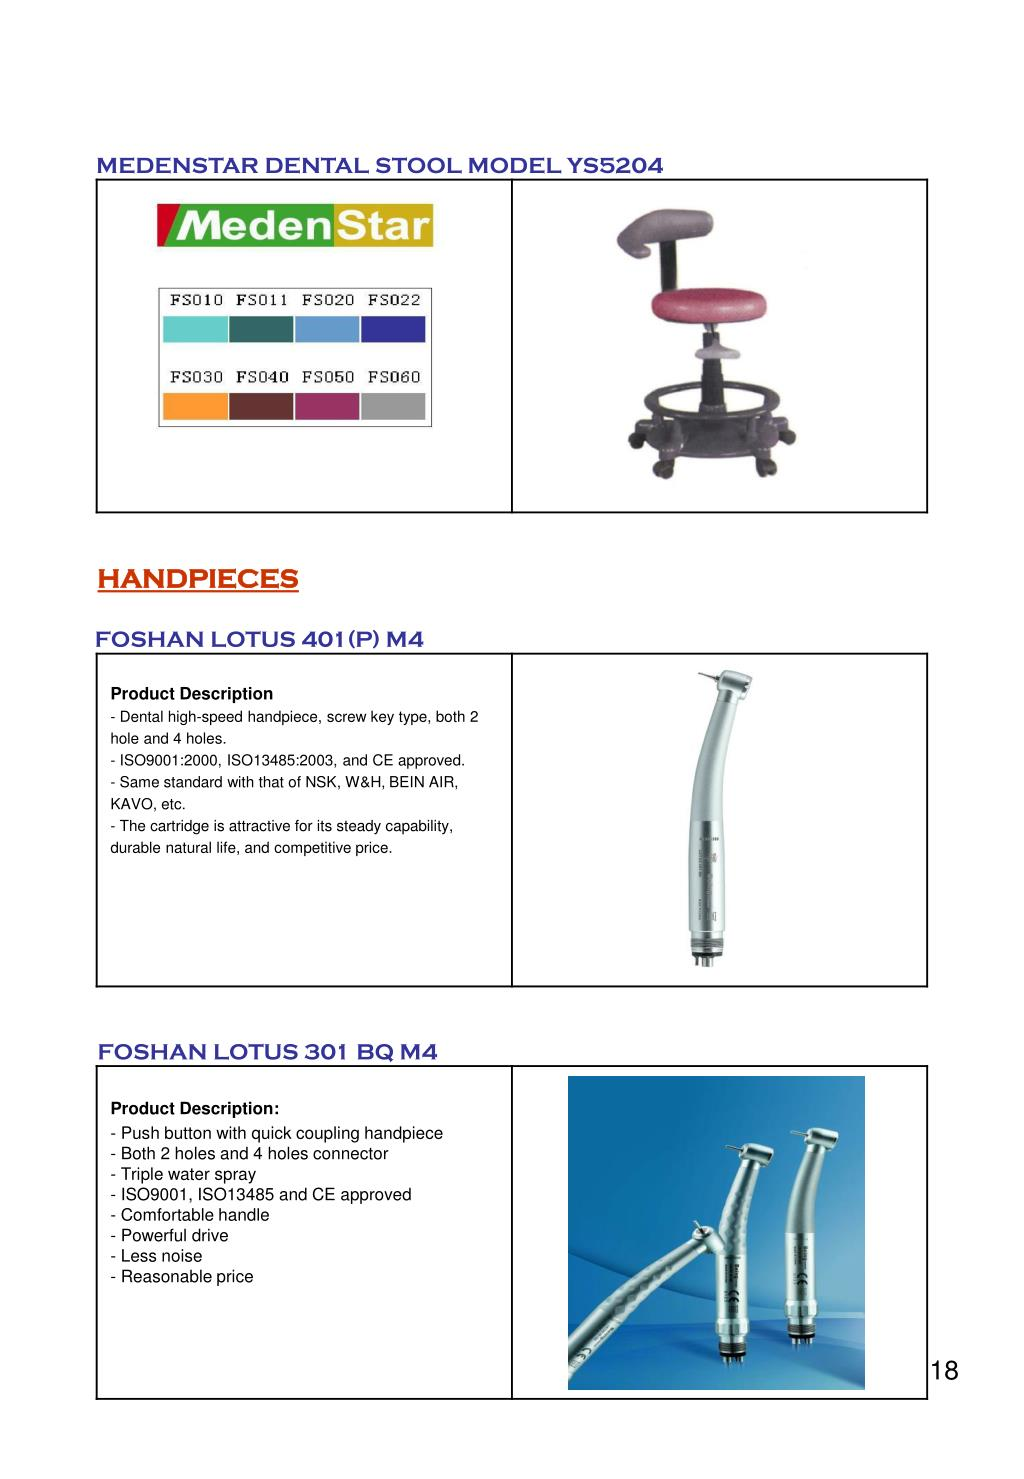 MEDENSTAR DENTAL STOOL MODEL YS5204